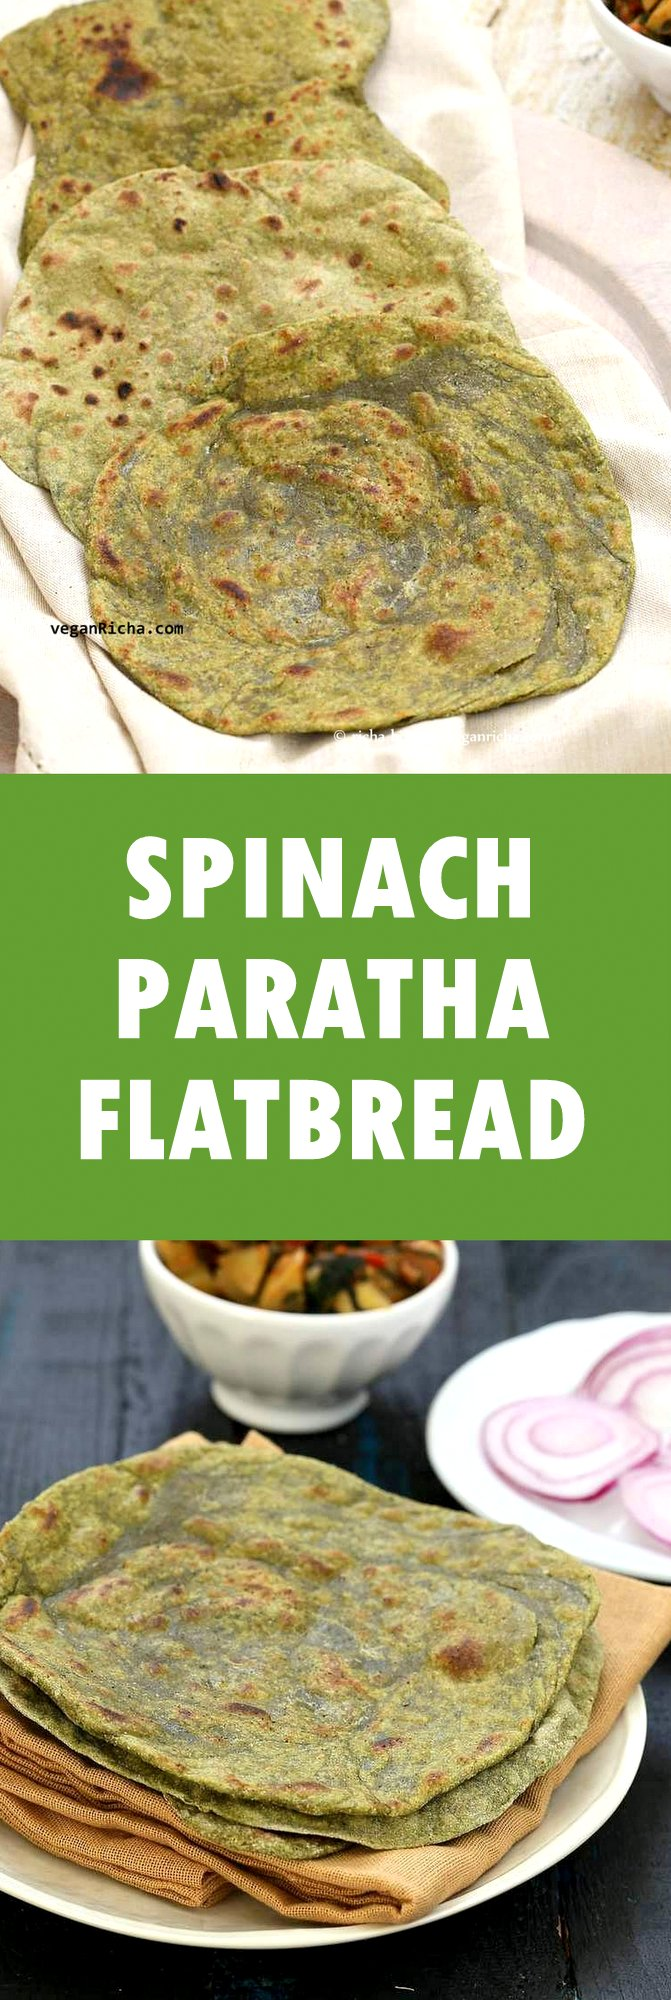 Spinach Paratha flatbread. Palak Paratha. Blended Spinach in the dough makes moist green flatbread. Vegan Yeast-free Indian Recipe. Use as Spinach Tortilla or stuff with favorite fillings. | VeganRicha.com